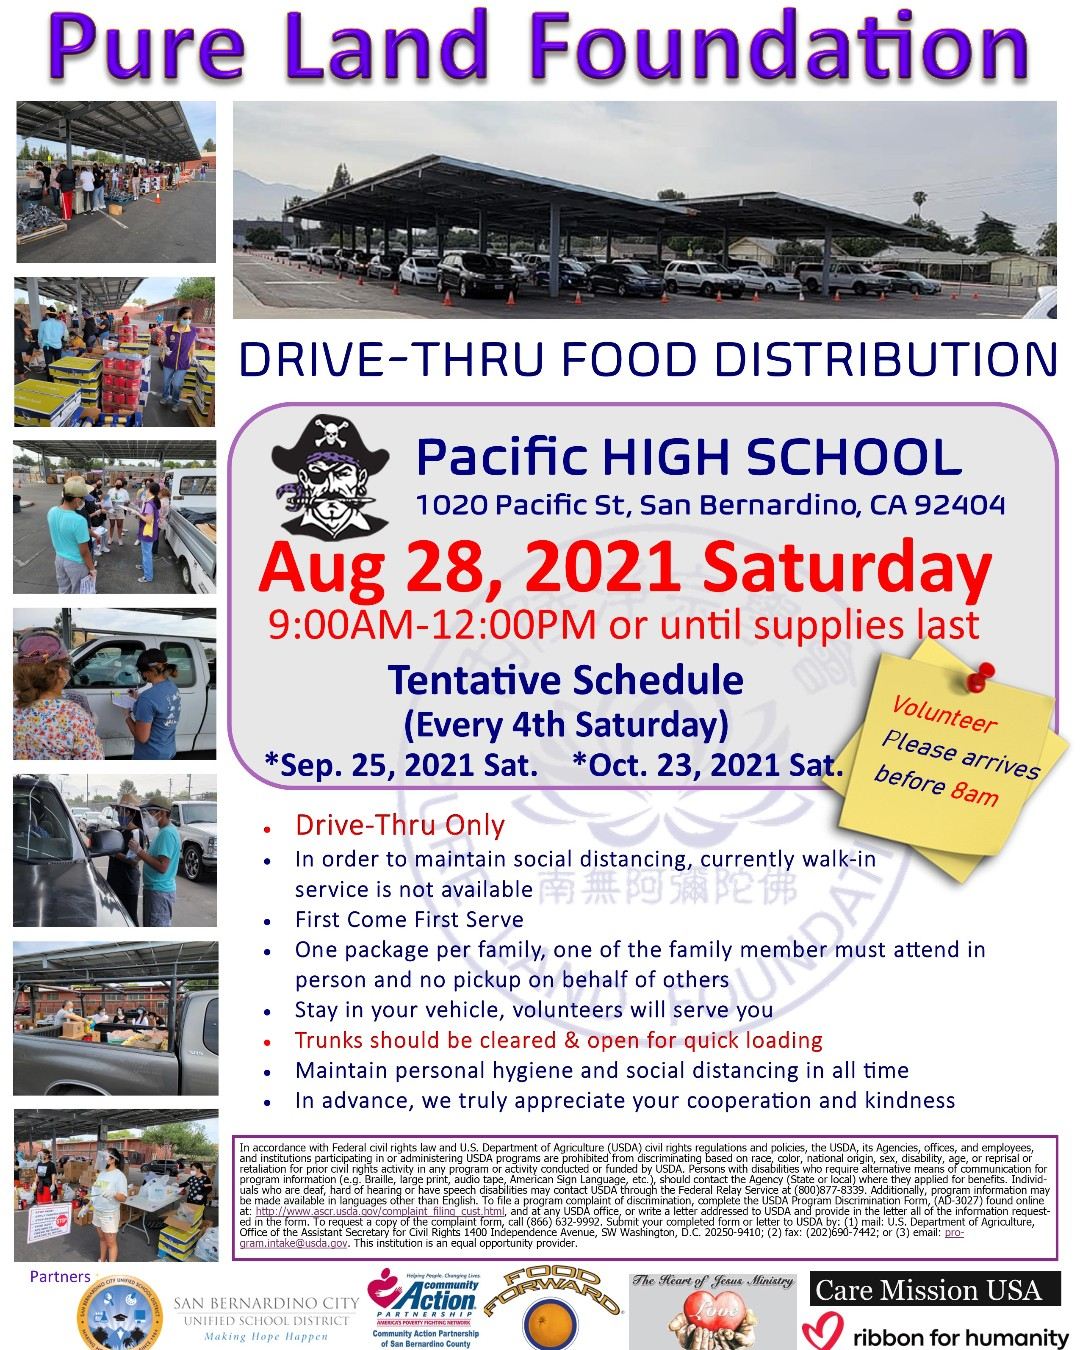 Pure Land Foundation will be hosting their next Drive-Thru Food Distribution on Saturday, August 28 at Pacific High School from 9 a.m. to 12 p.m. (or until supplies last). Stop by to get free groceries delivered to your vehicle.